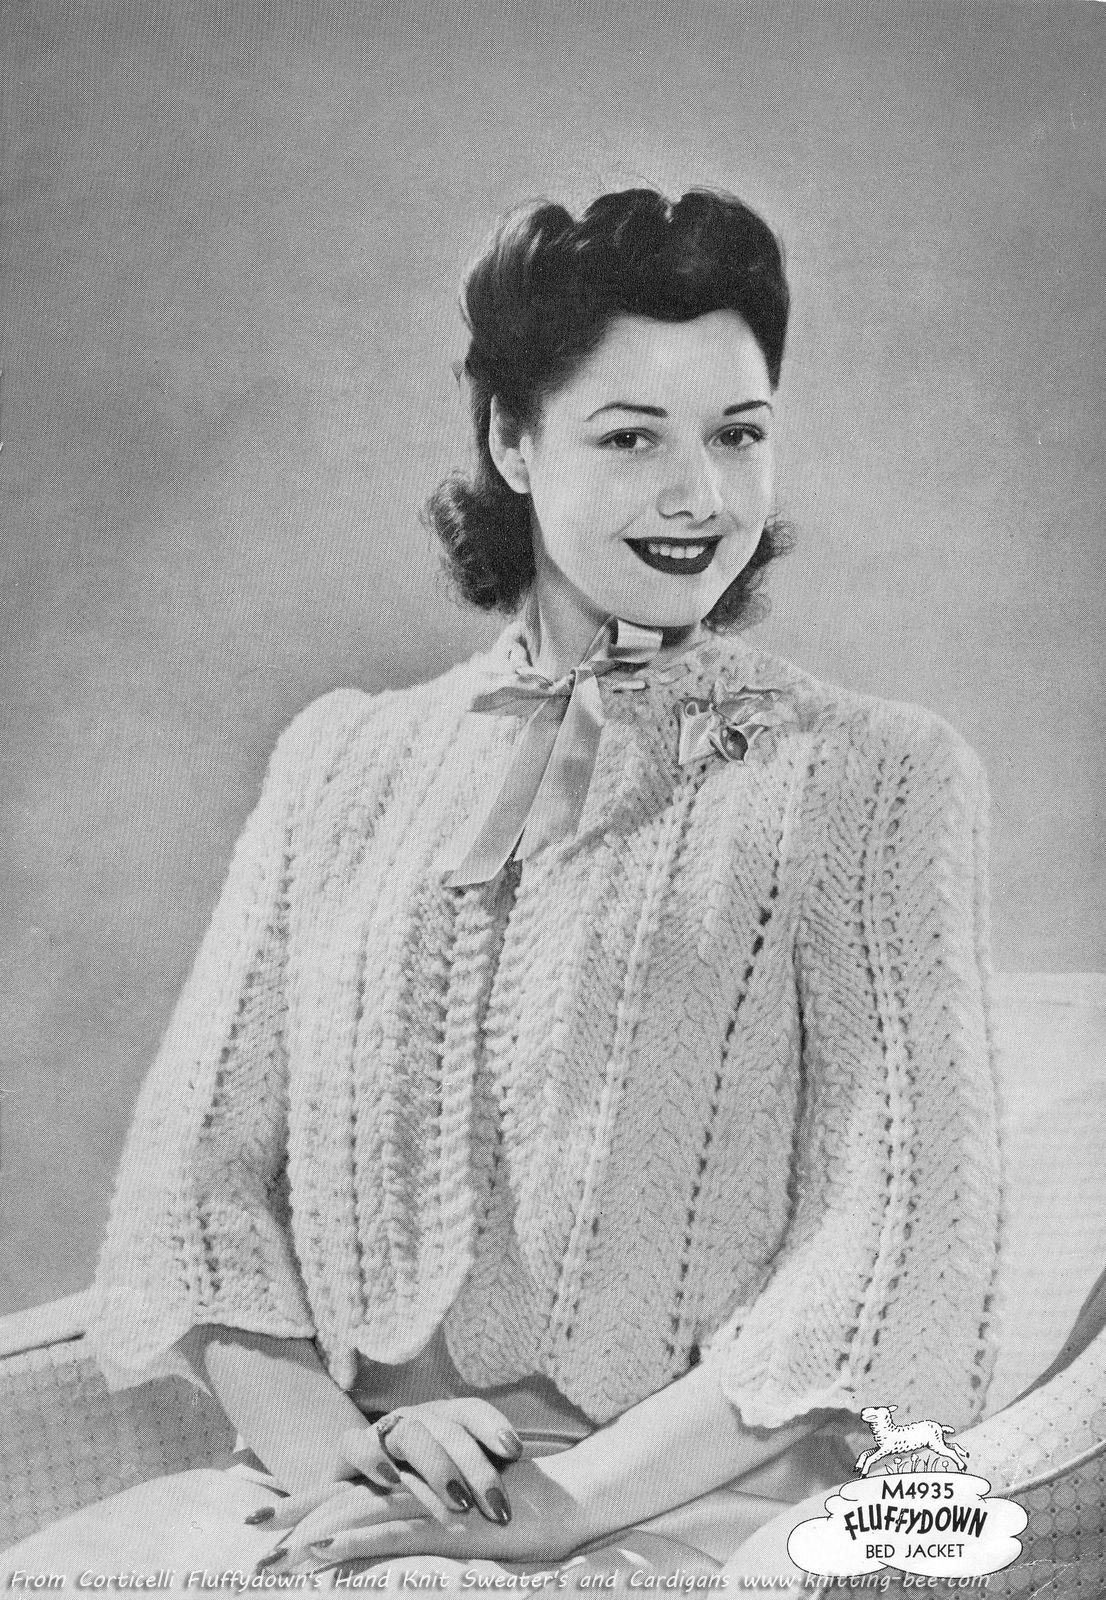 Knitting Patterns Free Vintage : The Vintage Pattern Files: 1940s Knitting - Bed Jacket